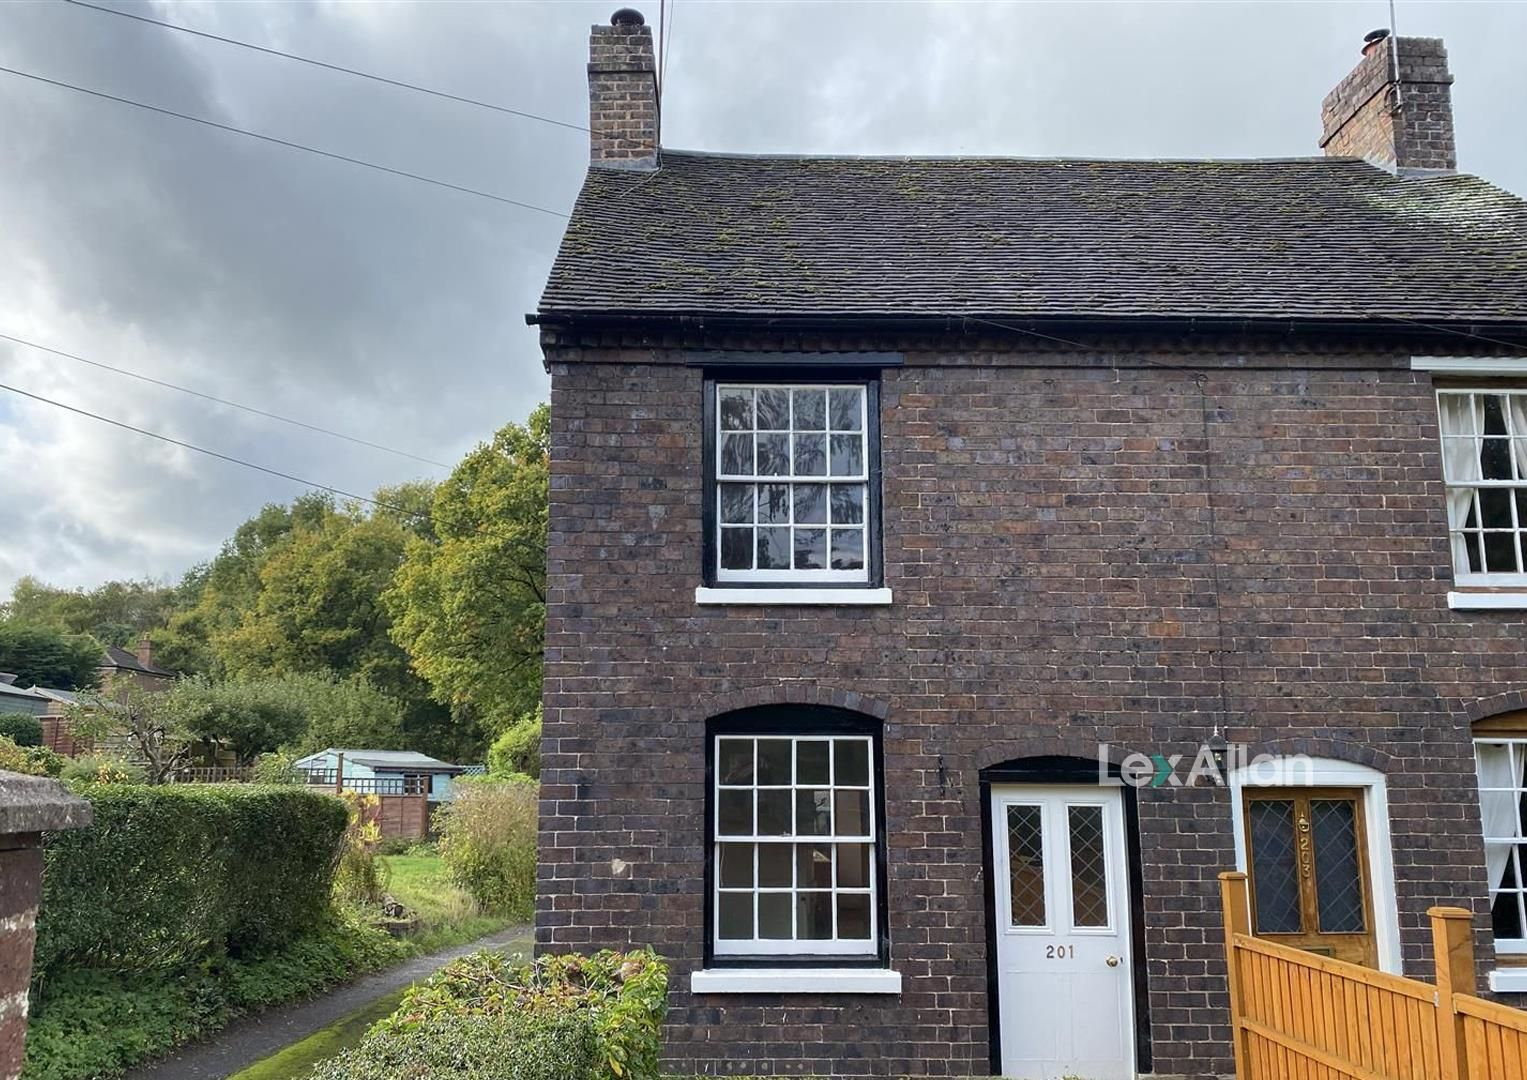 2 bed end-of-terrace for sale in Kinver - Property Image 1